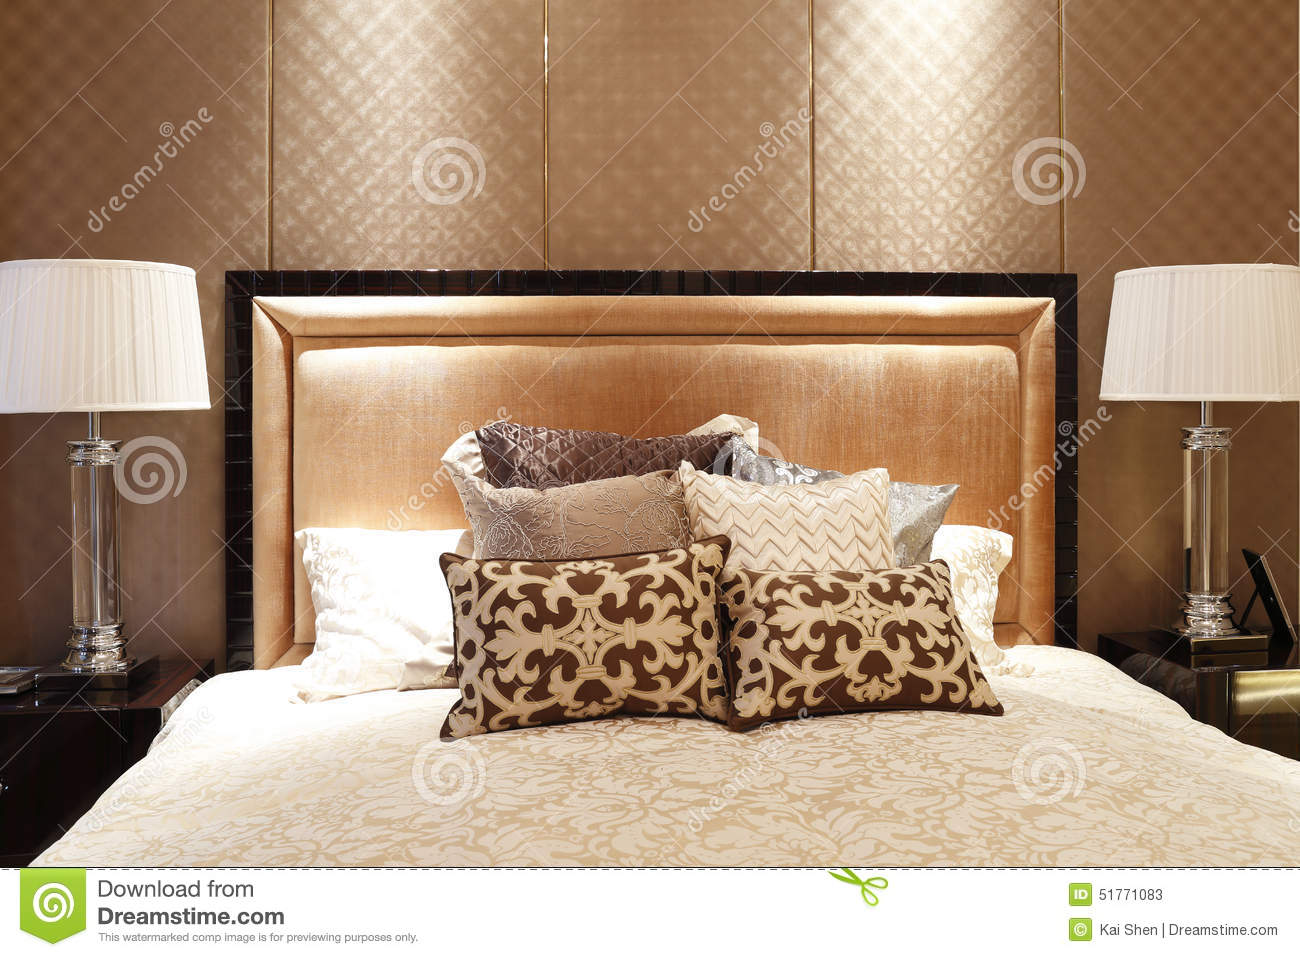 Enchanting bed with back design gallery best ideas for Bed back decoration